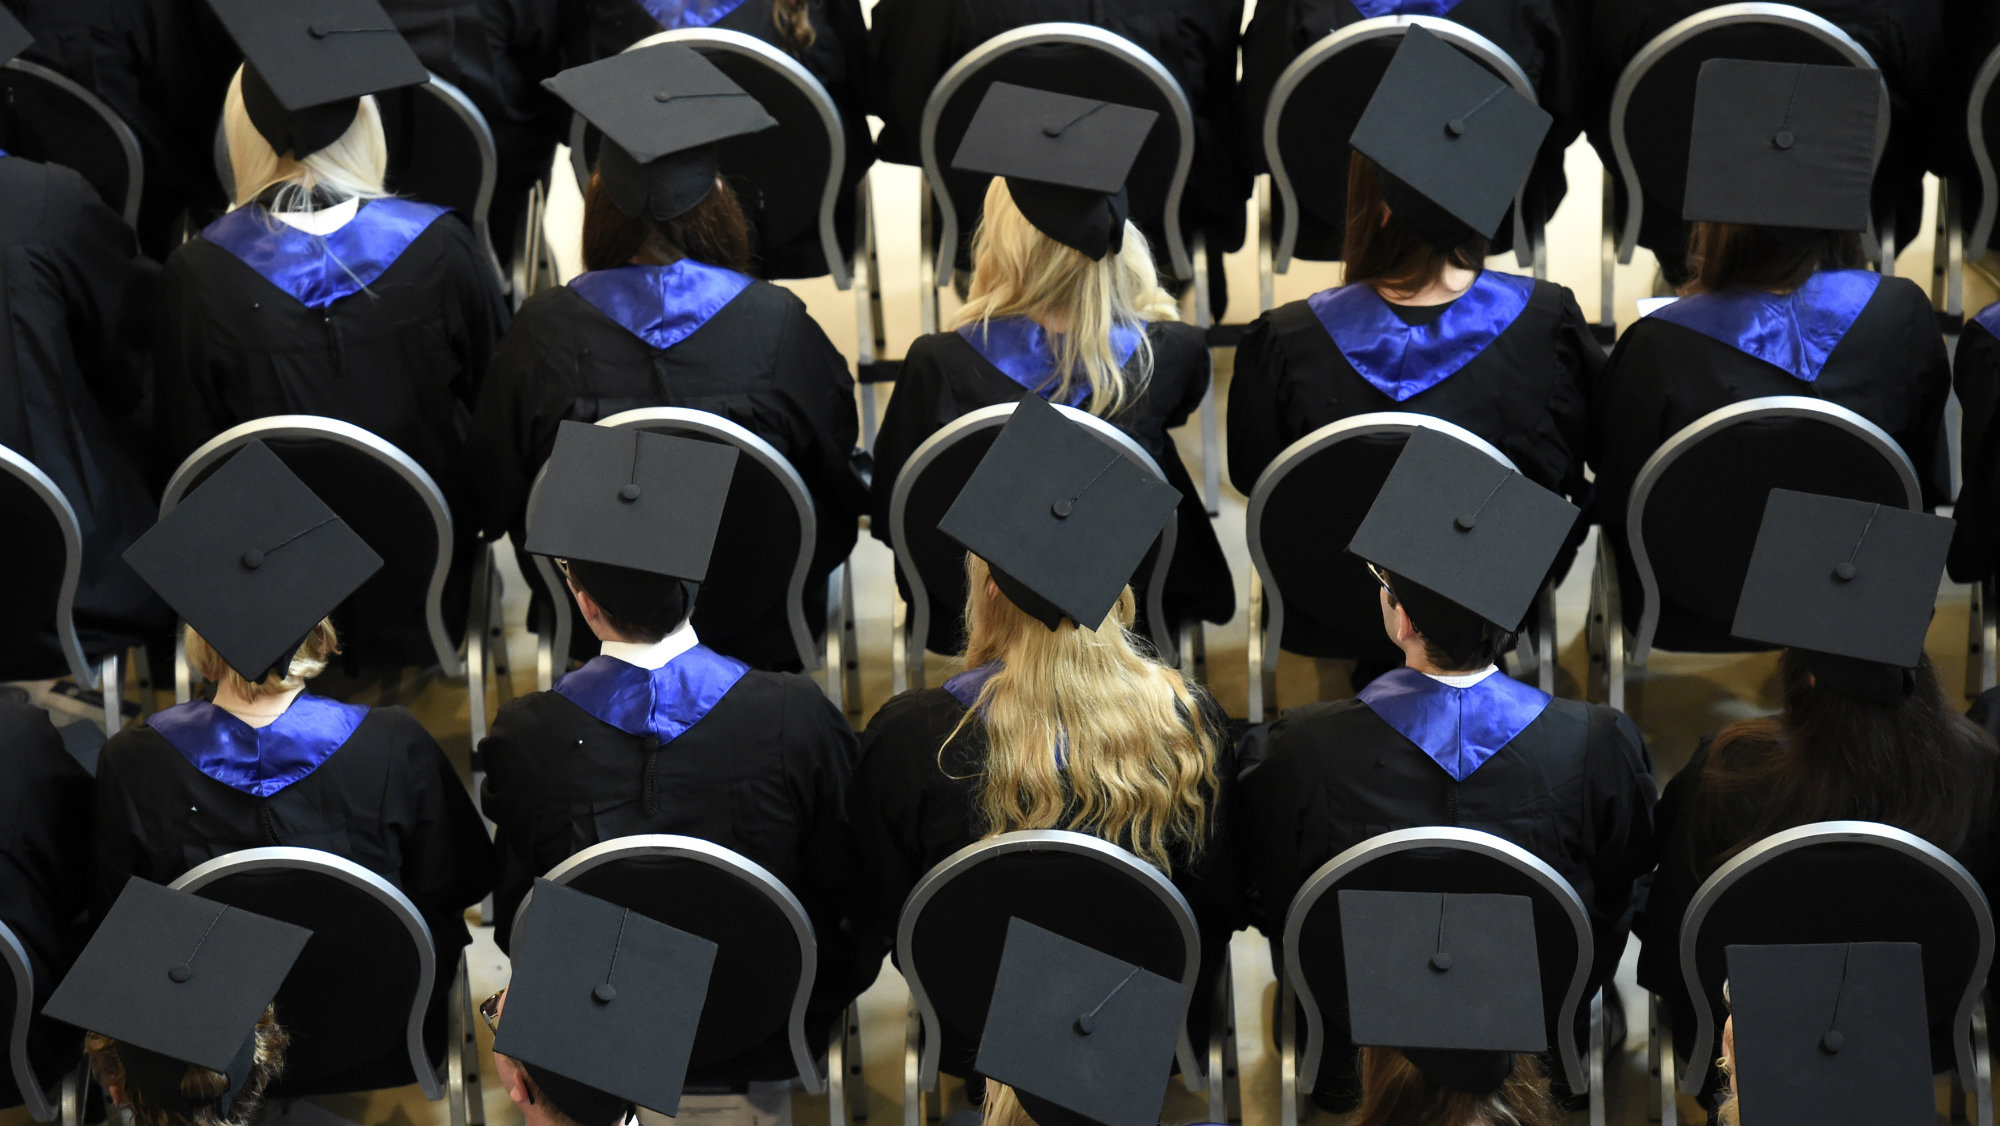 Students attend their graduation ceremony at the Hamburg School of Business Administration (HSBA) in Hamburg, October 1, 2014. REUTERS/Fabian Bimmer (GERMANY - Tags: BUSINESS EDUCATION SOCIETY)